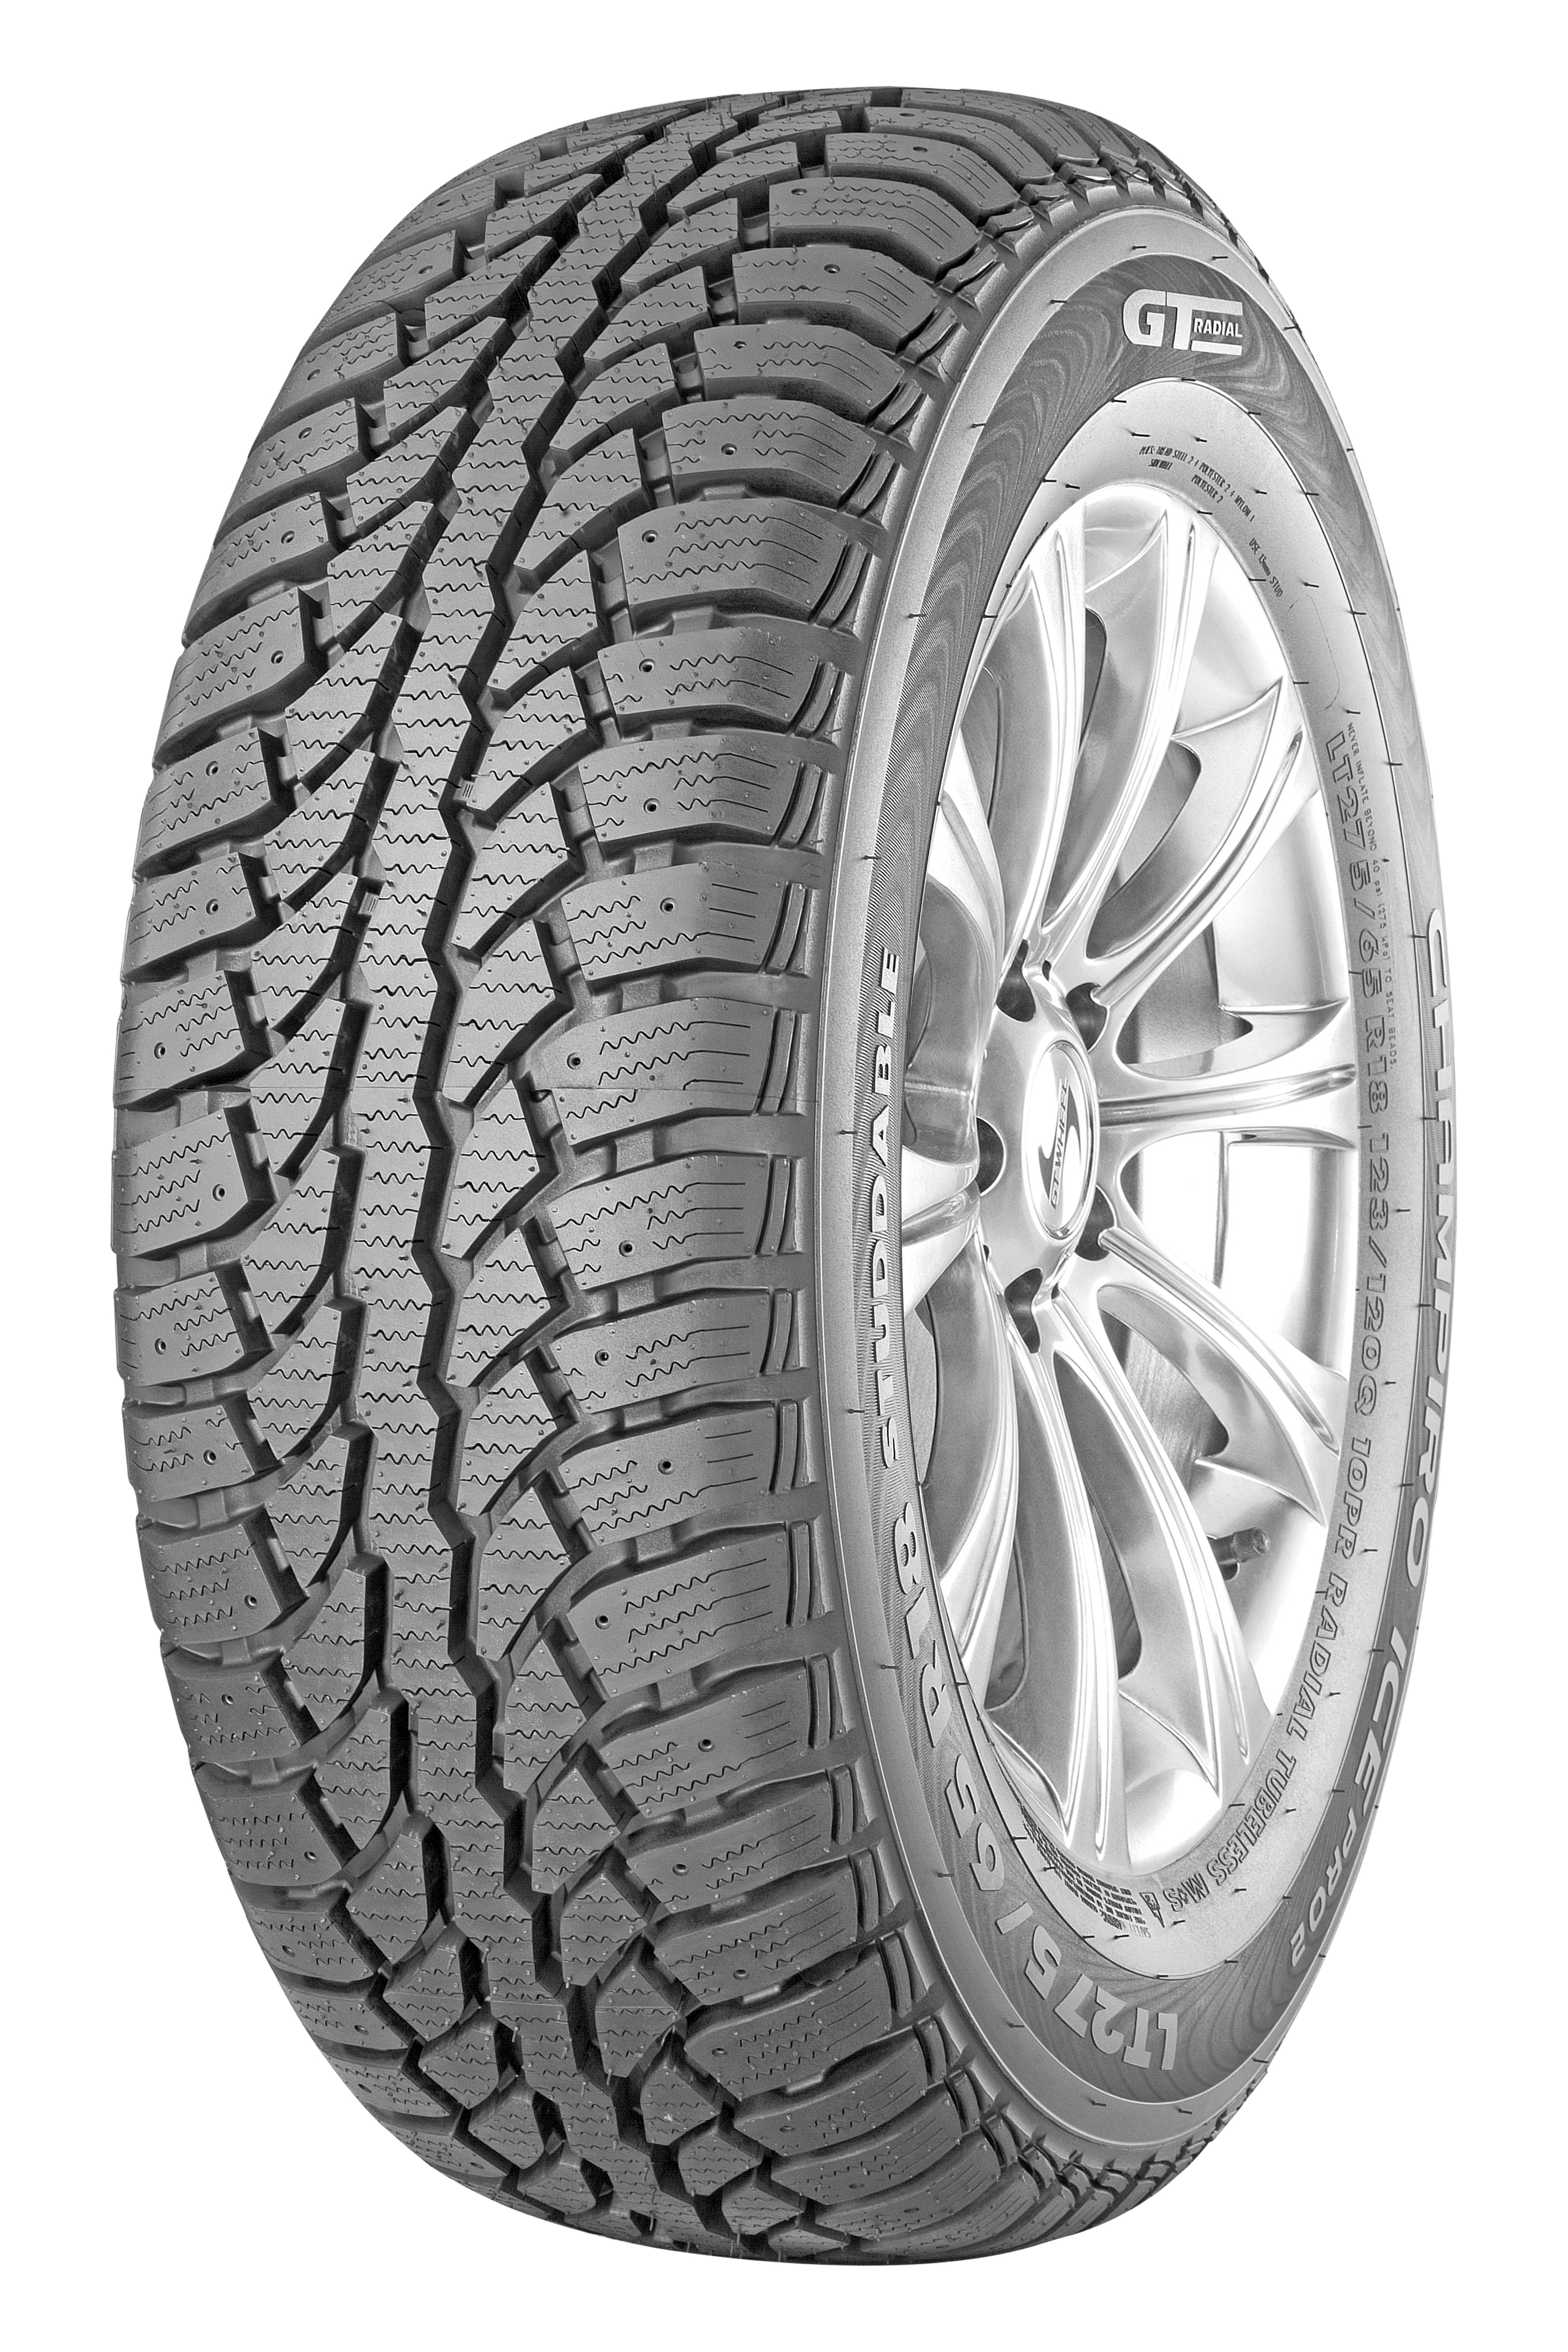 Commercial Tire Sizes >> Car Tires and Truck Tires | GT Radial